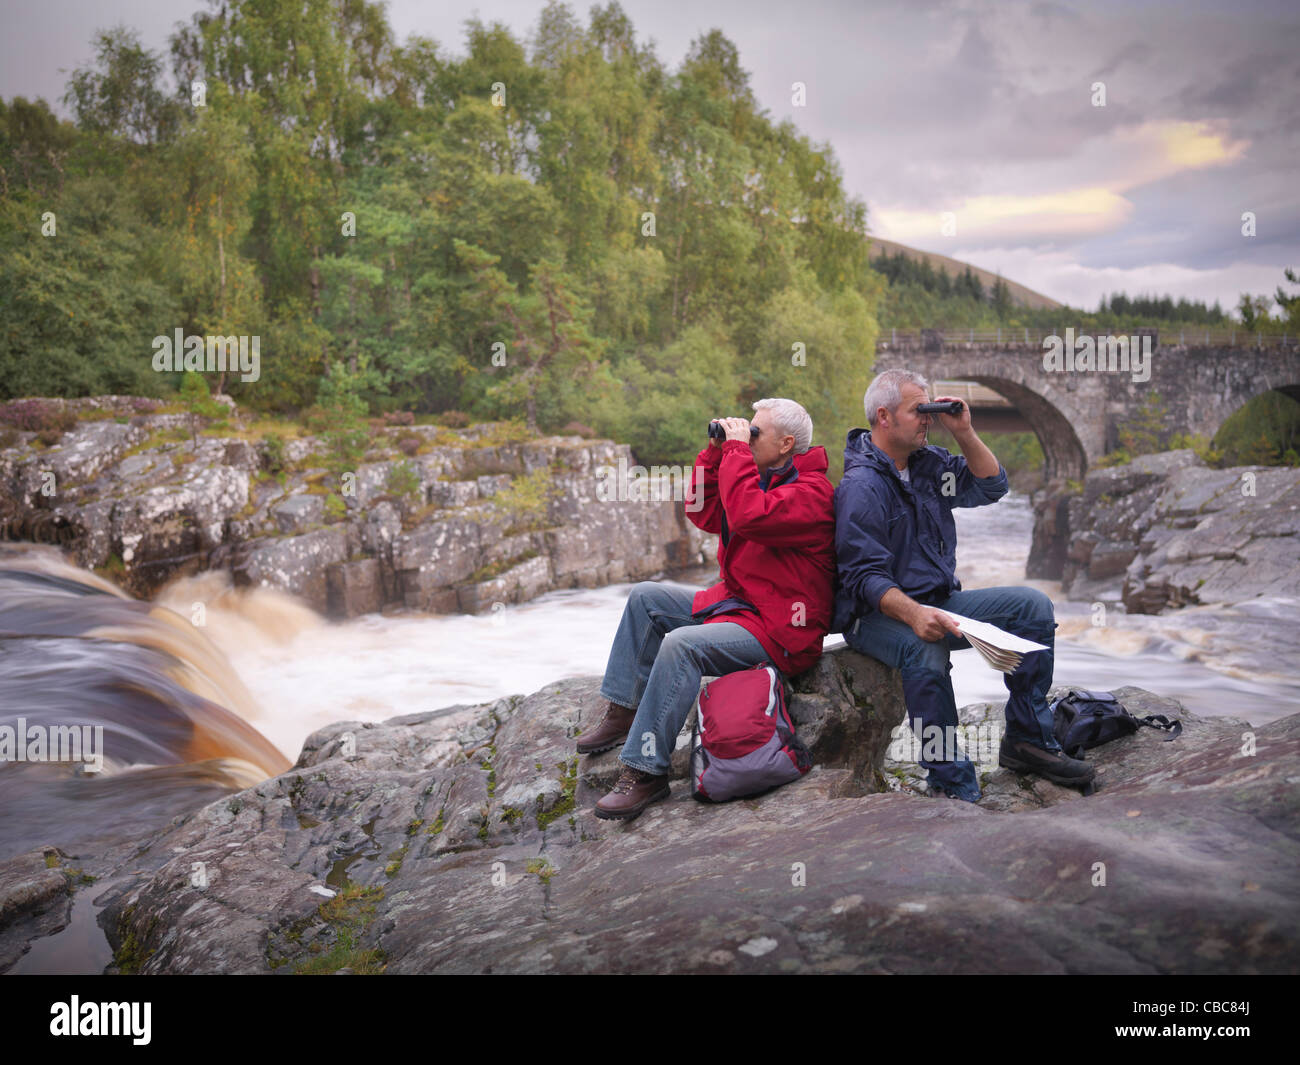 Hikers using binoculars by rocky river - Stock Image